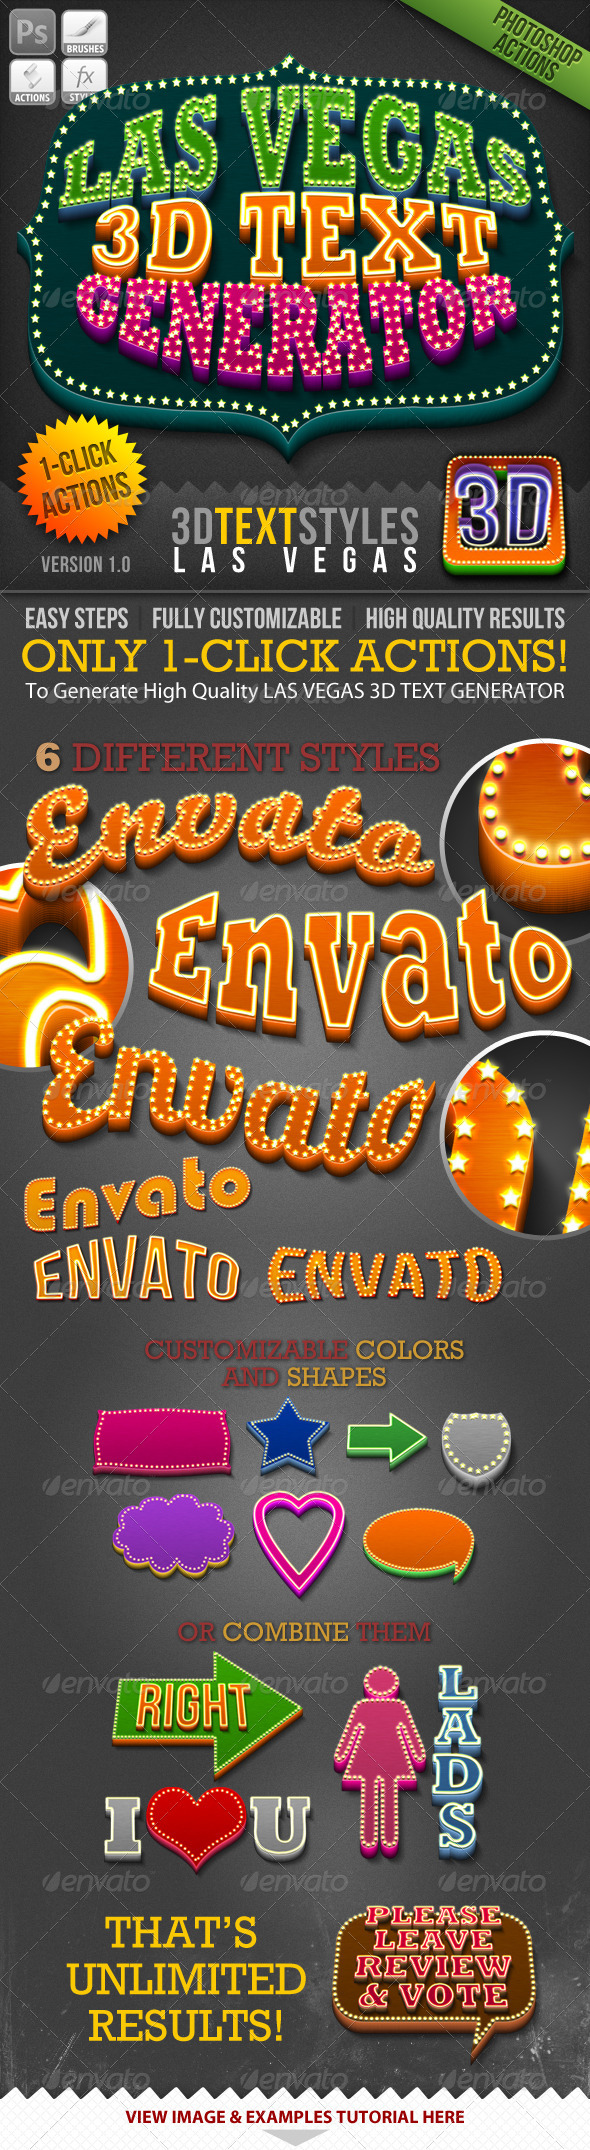 1-Click Action Las Vegas 3D Text Generator GraphicRiver - Add-ons -  Photoshop  Actions  Text Effects 781836